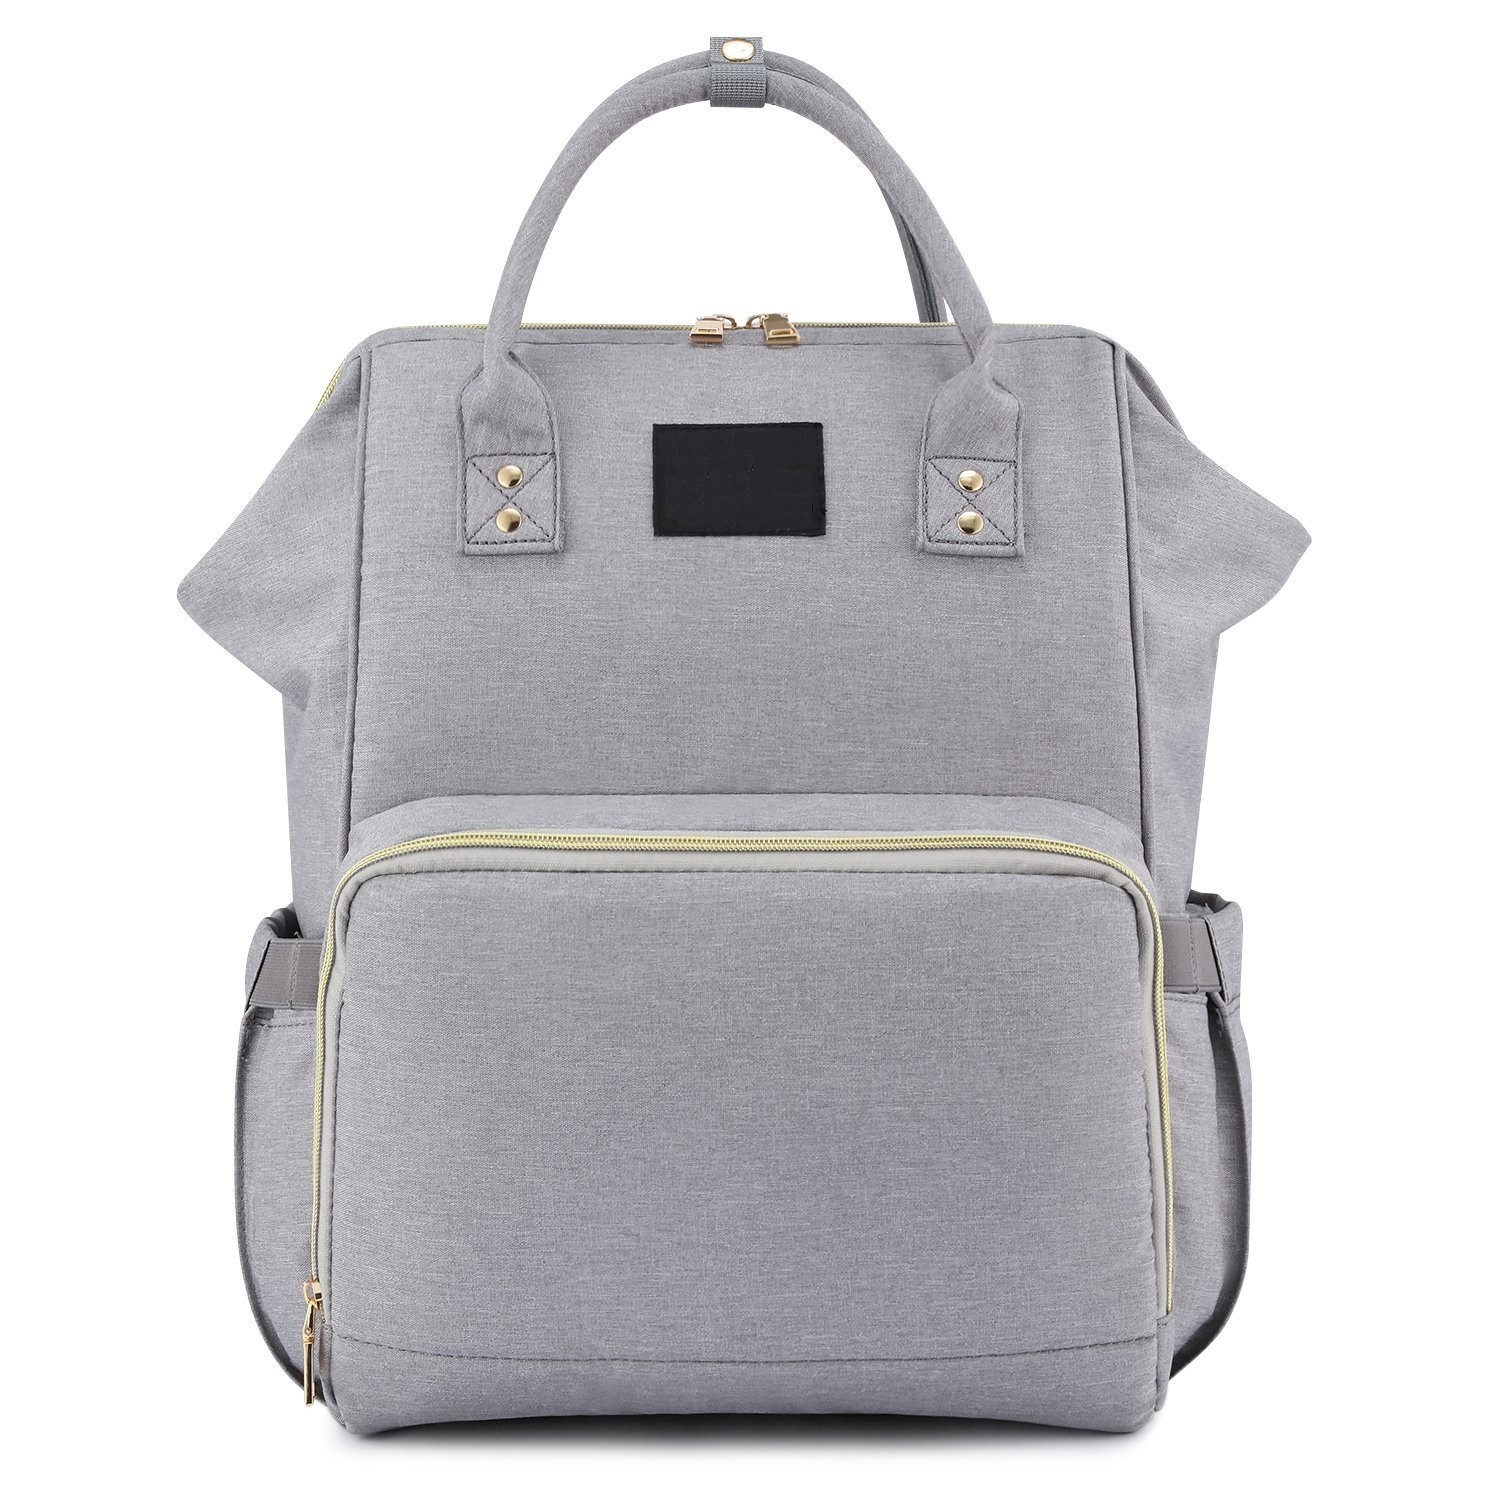 Hot Selling Fashionable Multi-functional Large-Volume Diaper Bag MOTHER'S Bag Shoulder Casual Nylon Waterproof Maternity Package